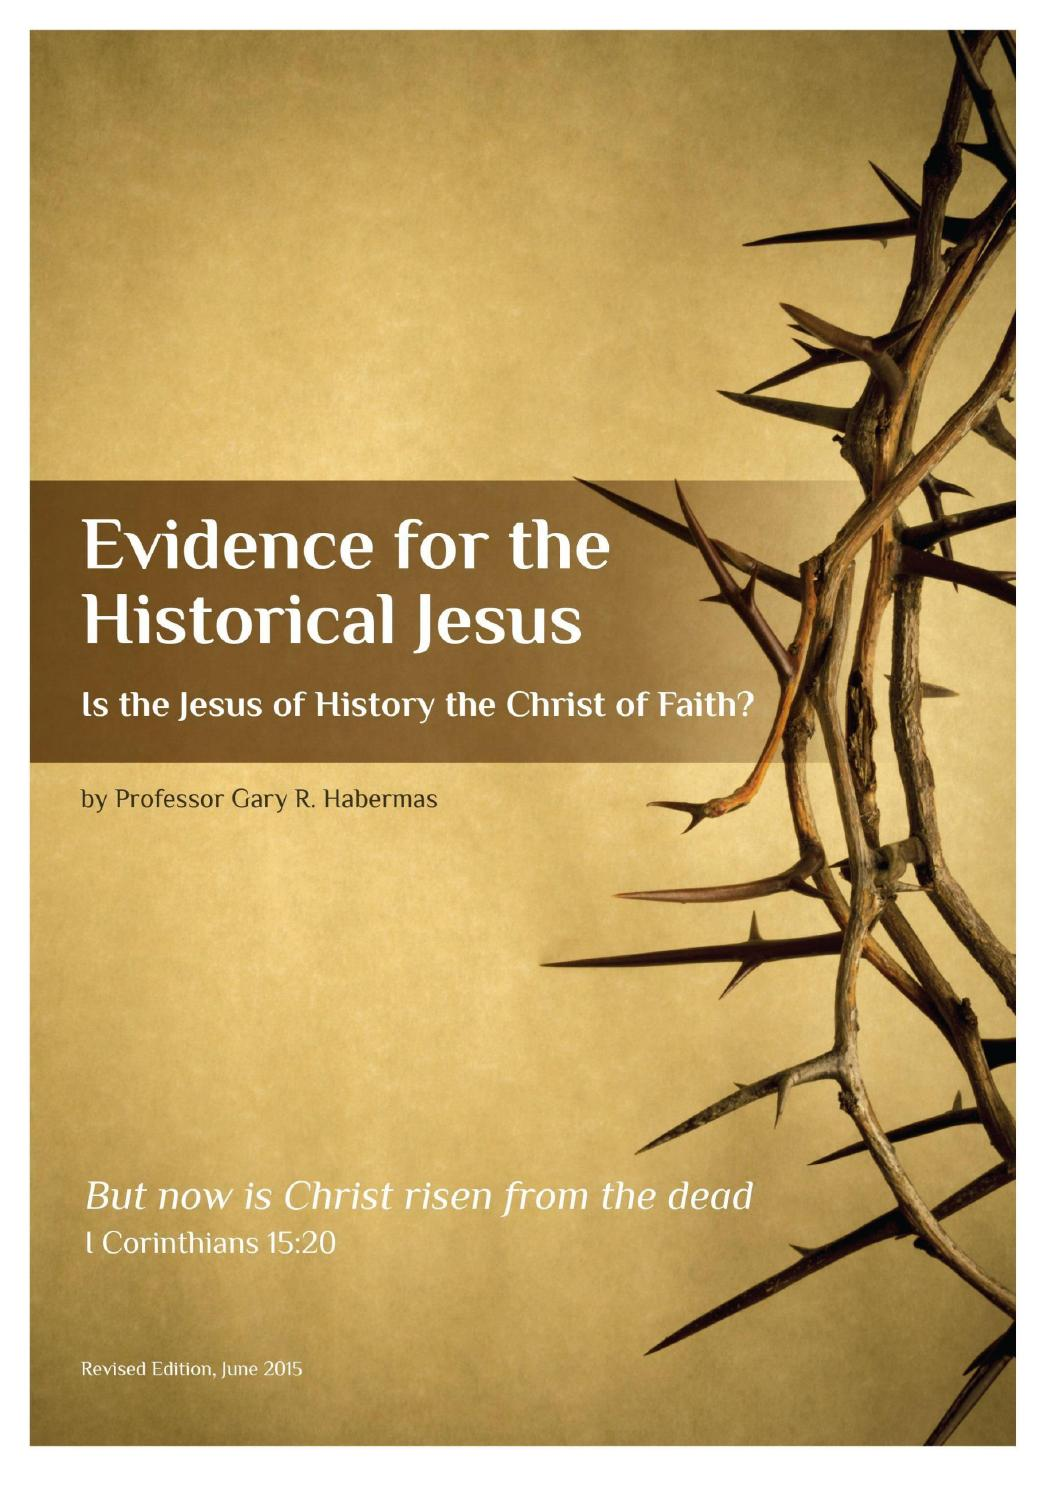 Historical thesis of evidence